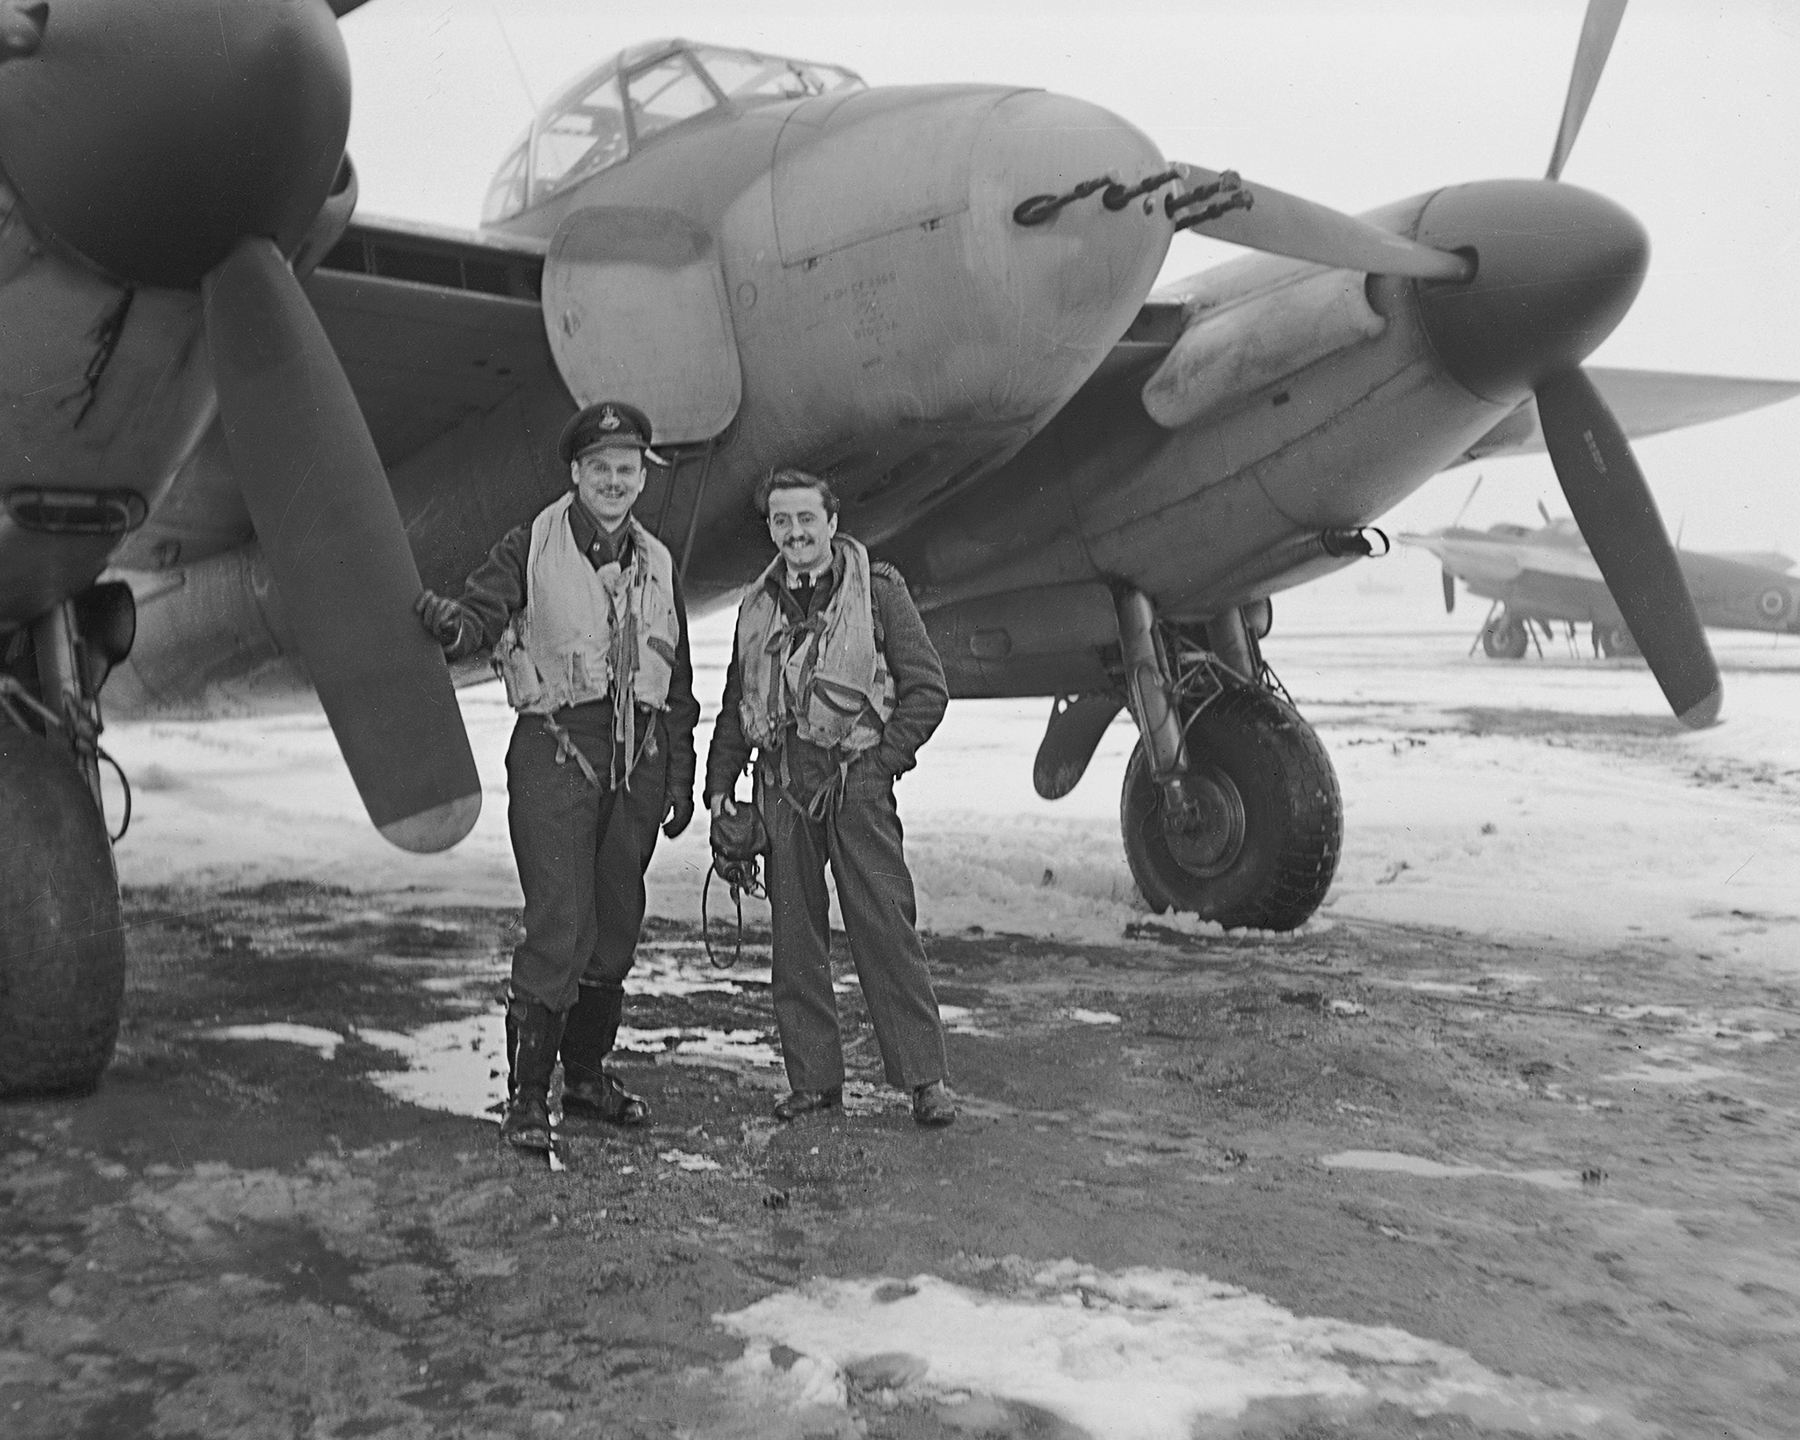 "First time out in their new Mosquito—and on New Year's night in the bargain—this twosome from RCAF 406 ""Lynx"" Squadron celebrated by shooting down an ME.110. Flight Lieutenant Bill Boak (left) a navigator from Saskatoon, Saskatchewan, spotted their target over an enemy aerodrome, and Flight Lieutenant Phillip Etienne, a pilot from Montreal, Québec, did the rest with several cannon bursts. It was their first ""kill"" but they were just getting nicely started on their tour, it being their fifth mission. Flight Lieutenant Boak figures he has tallied one for his hometown, which has adopted the squadron. PHOTO: DND Archives, PL-42217"